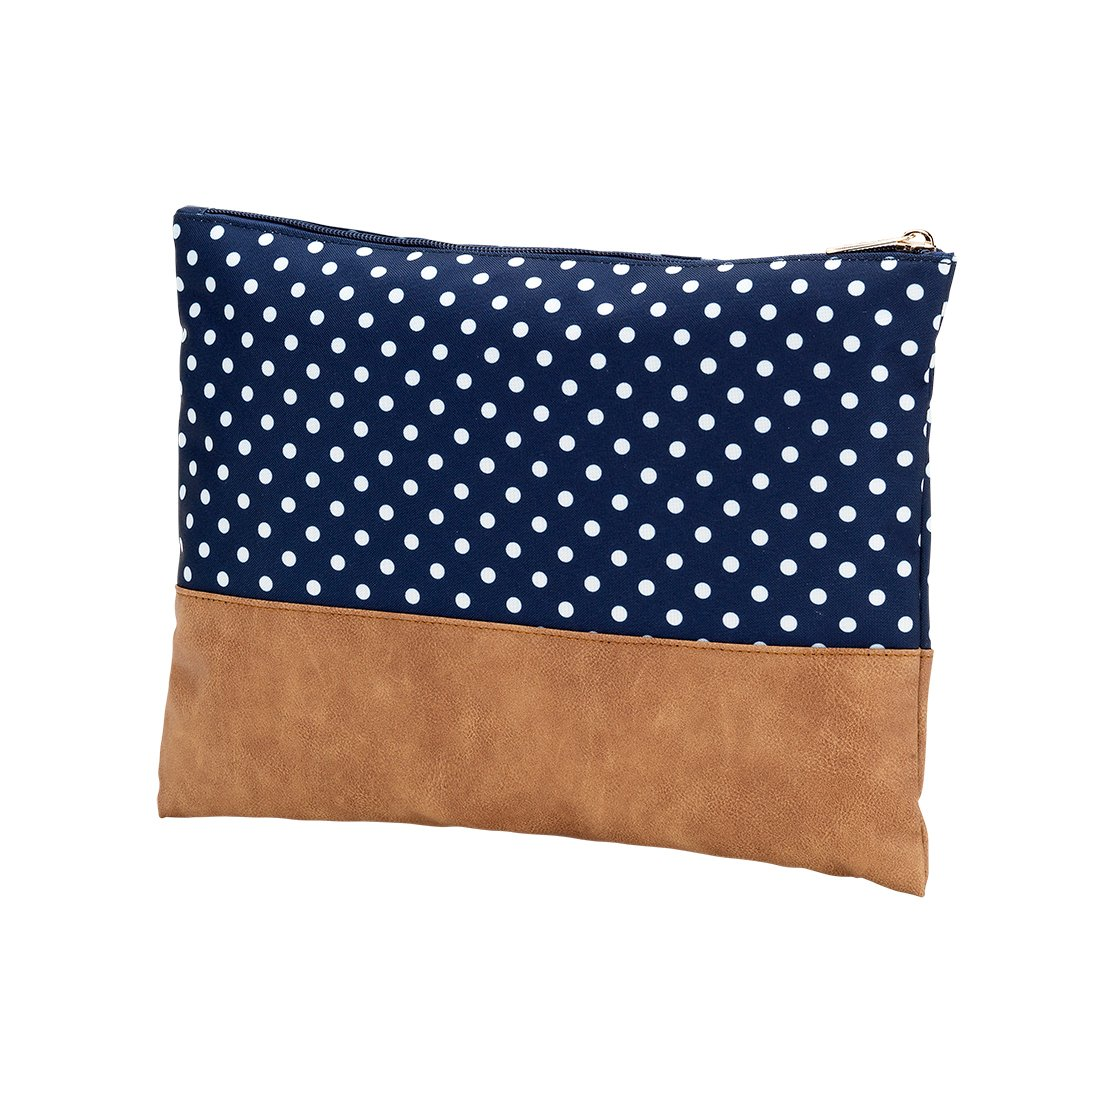 Navy Blue White Charlie Dot 12 x 9 Polyester Zippered Pouch Clutch